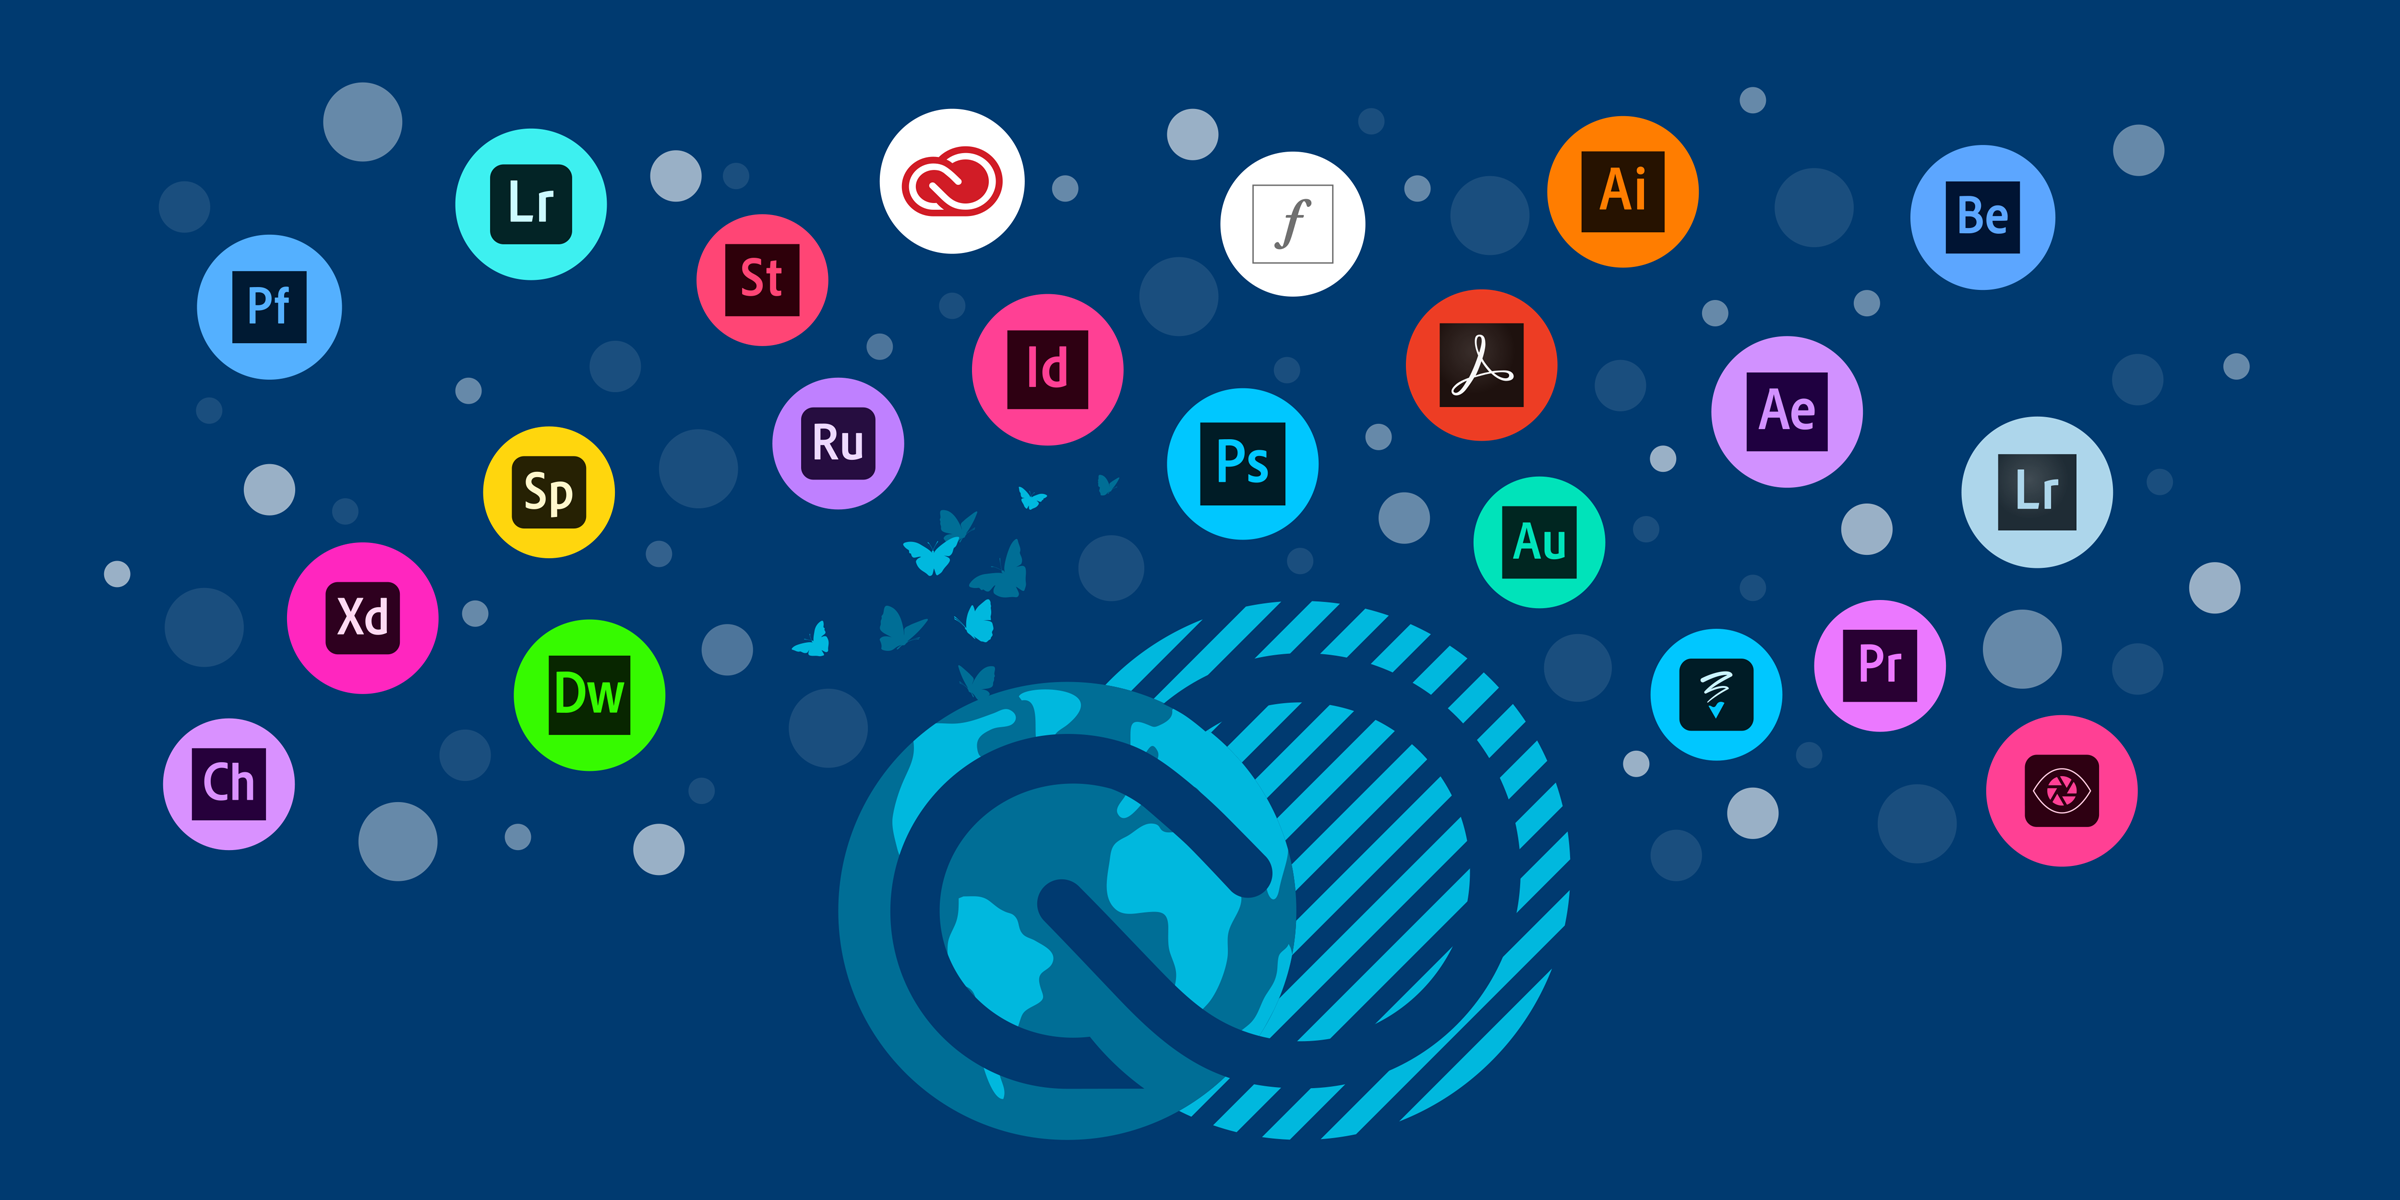 creative cloud symbol on top of the globe and surrounded by symbols of individual Adobe applications